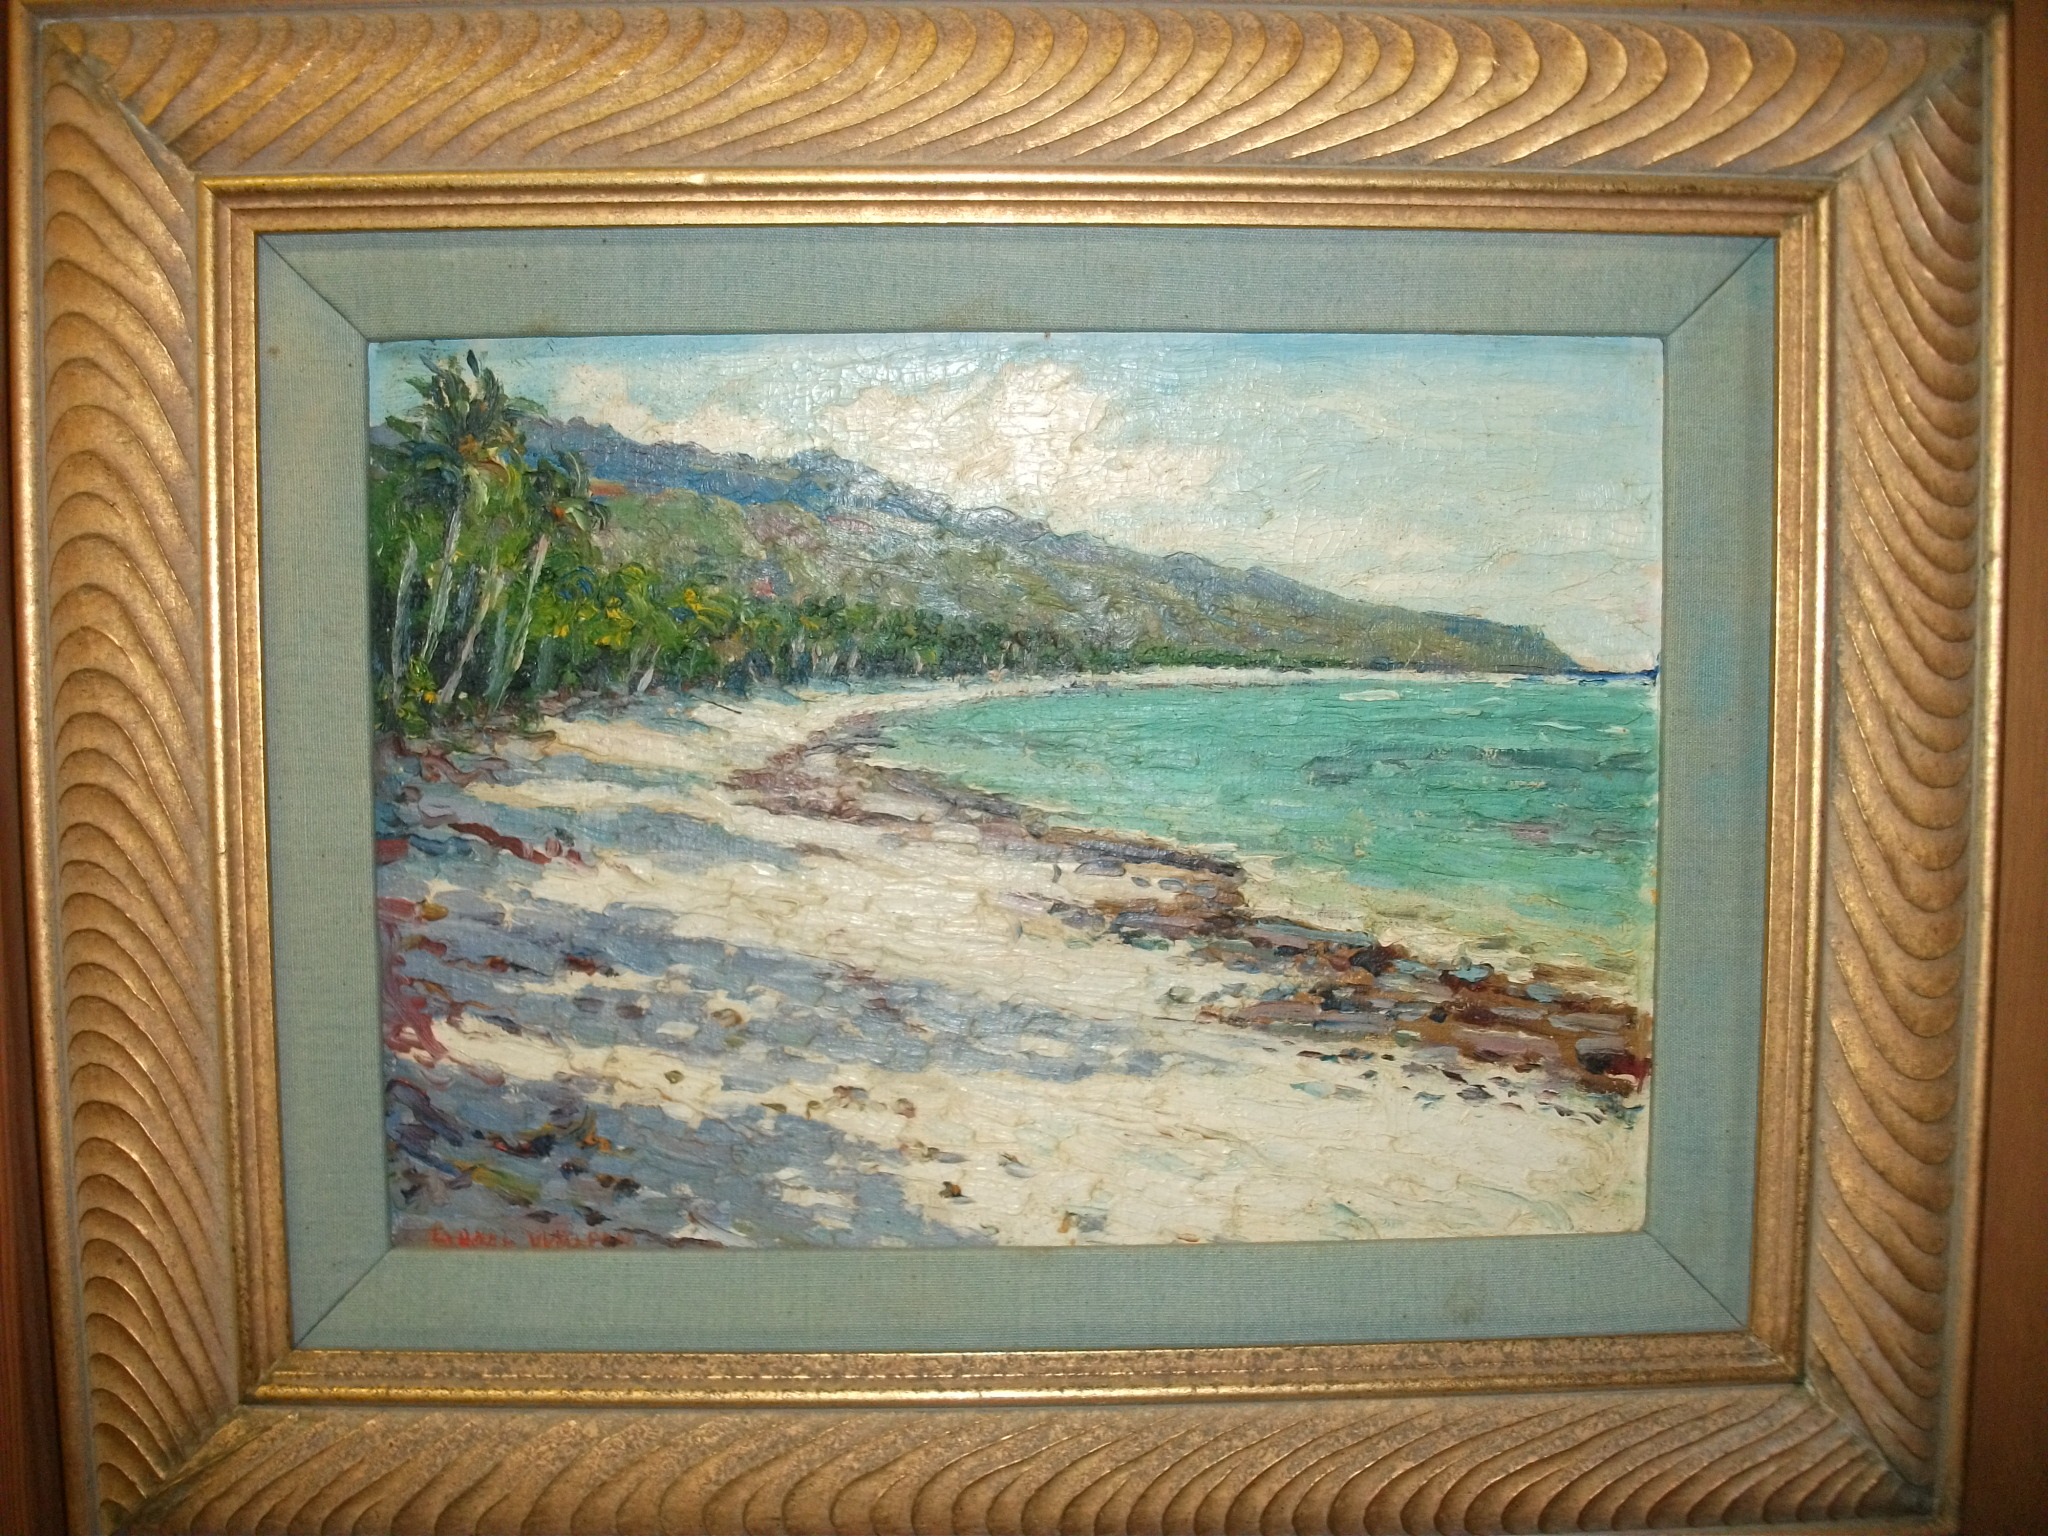 painting being appraised in Kailua, HI